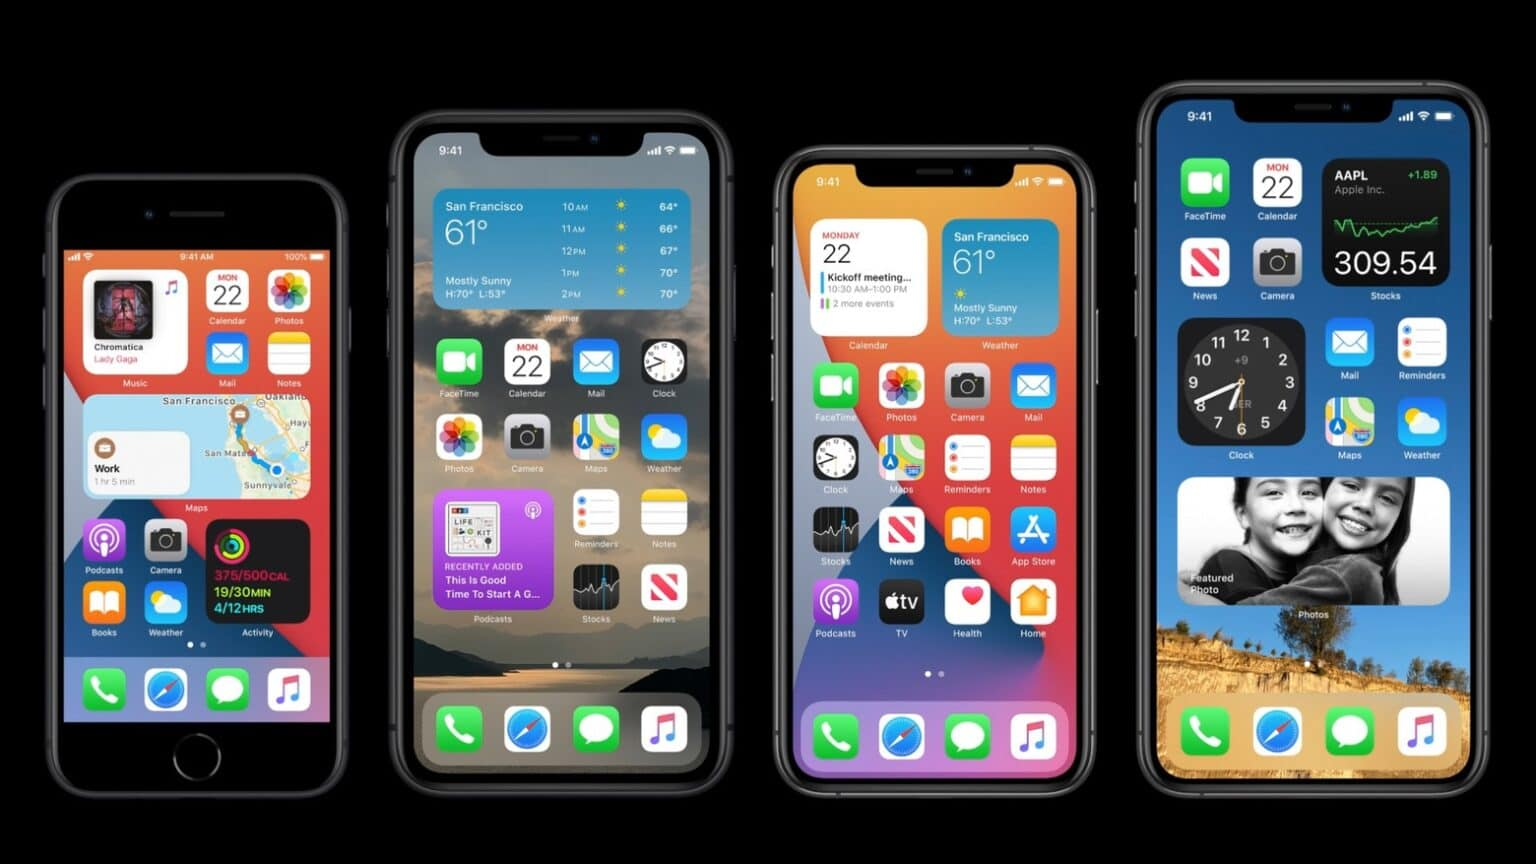 WWDC 2020 brought iOS 14 with iPhone home screen widgets, hurray!